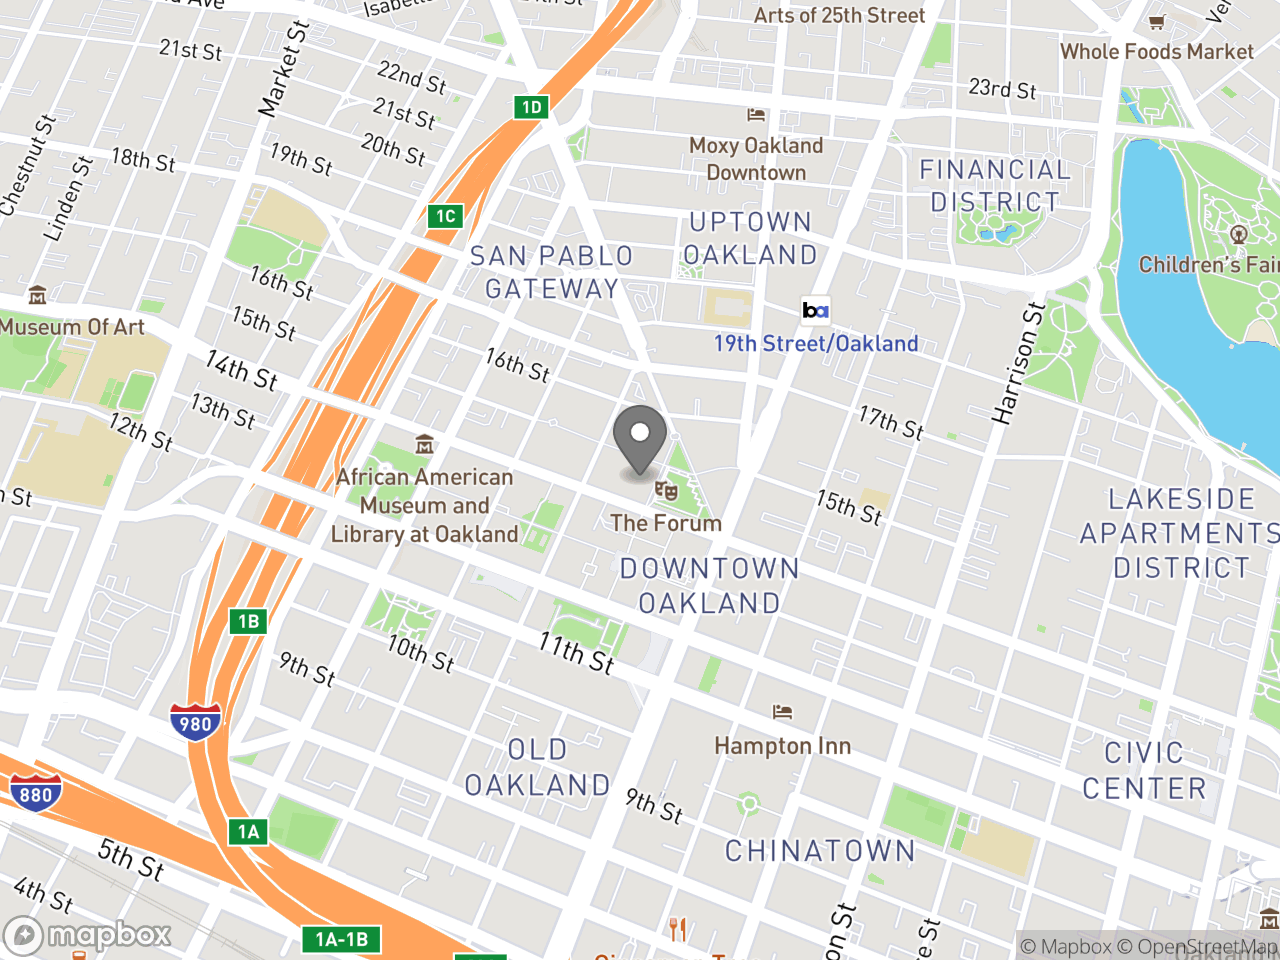 Map location for February 5, 2020 Planning Commission Meeting, located at 1 Frank H. Ogawa Plaza in Oakland, CA 94612